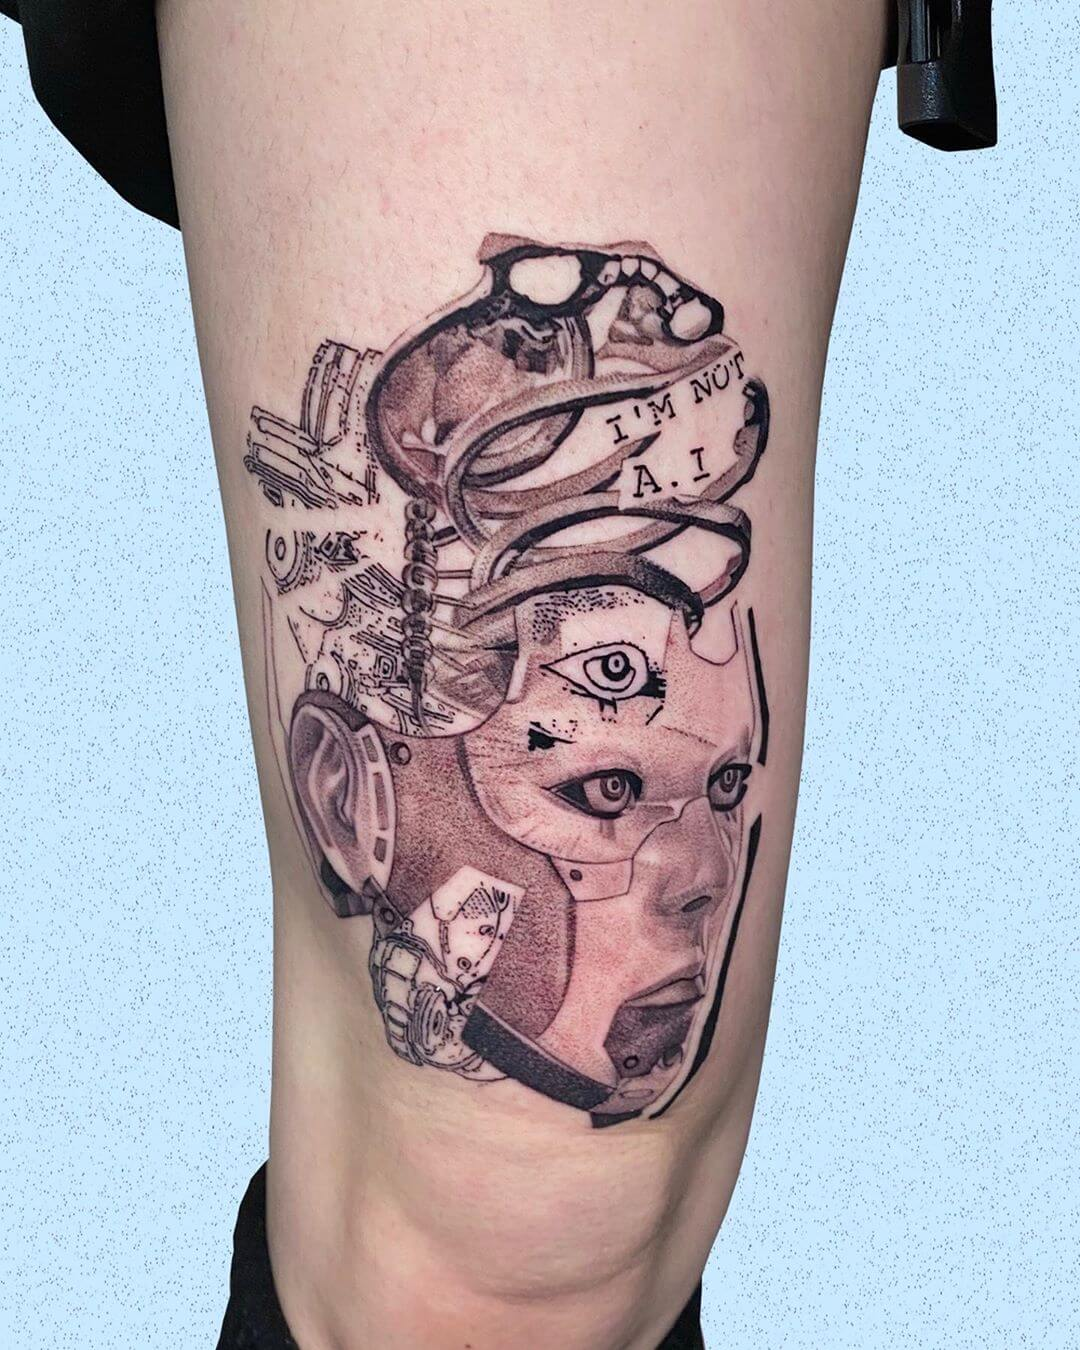 Cyber themed tattoo by Comma ttt